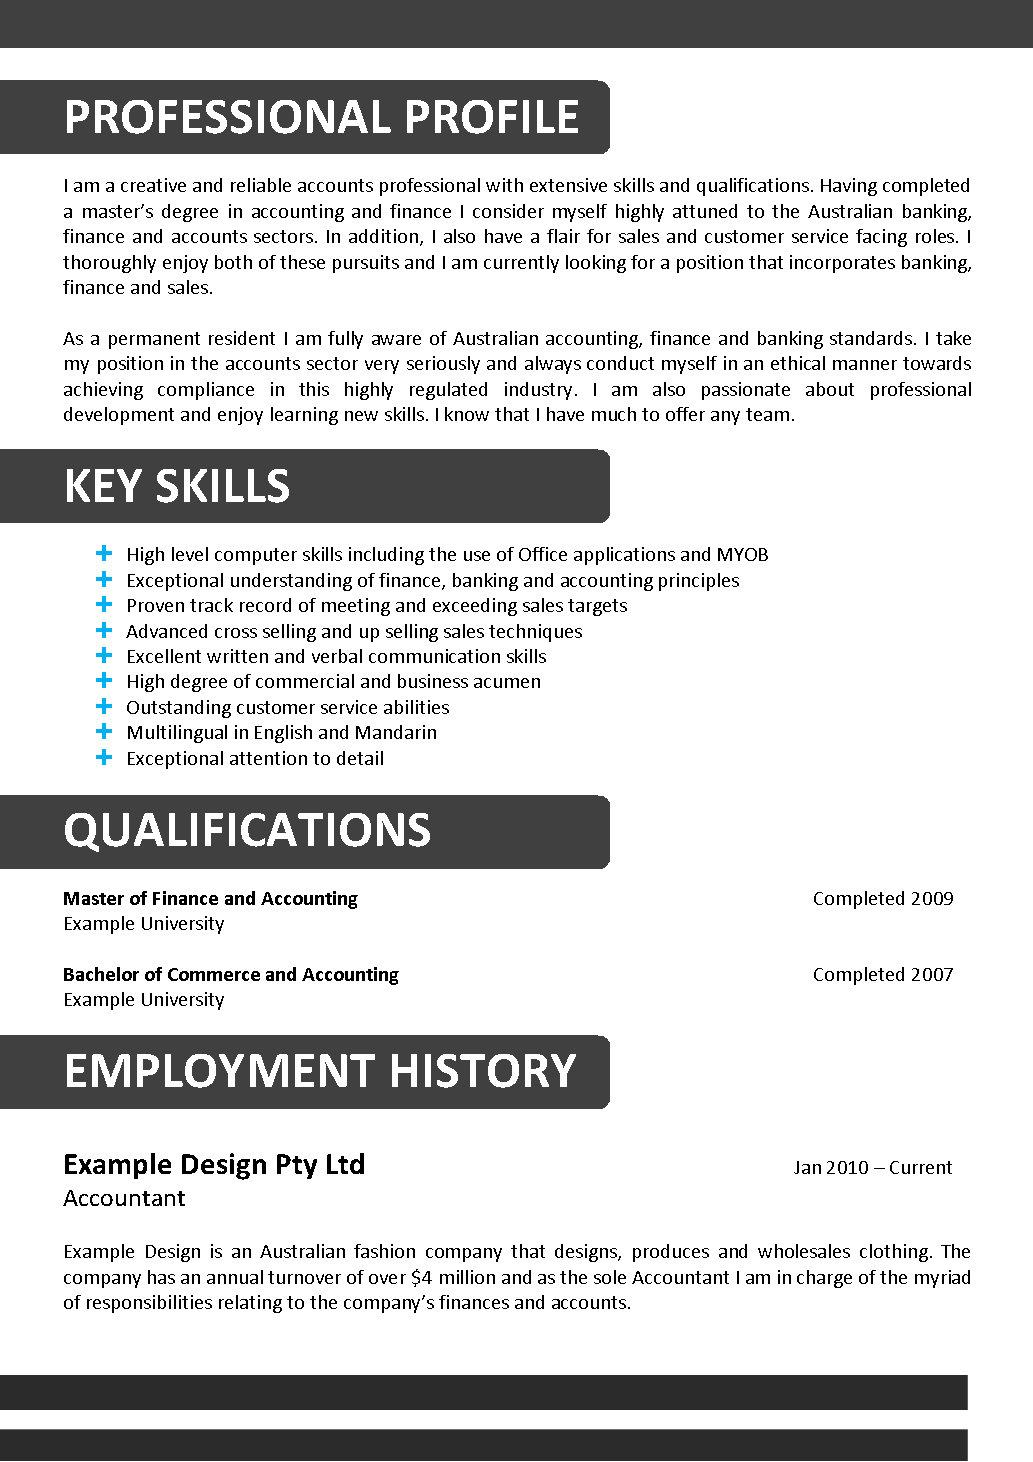 Myob qualified resume